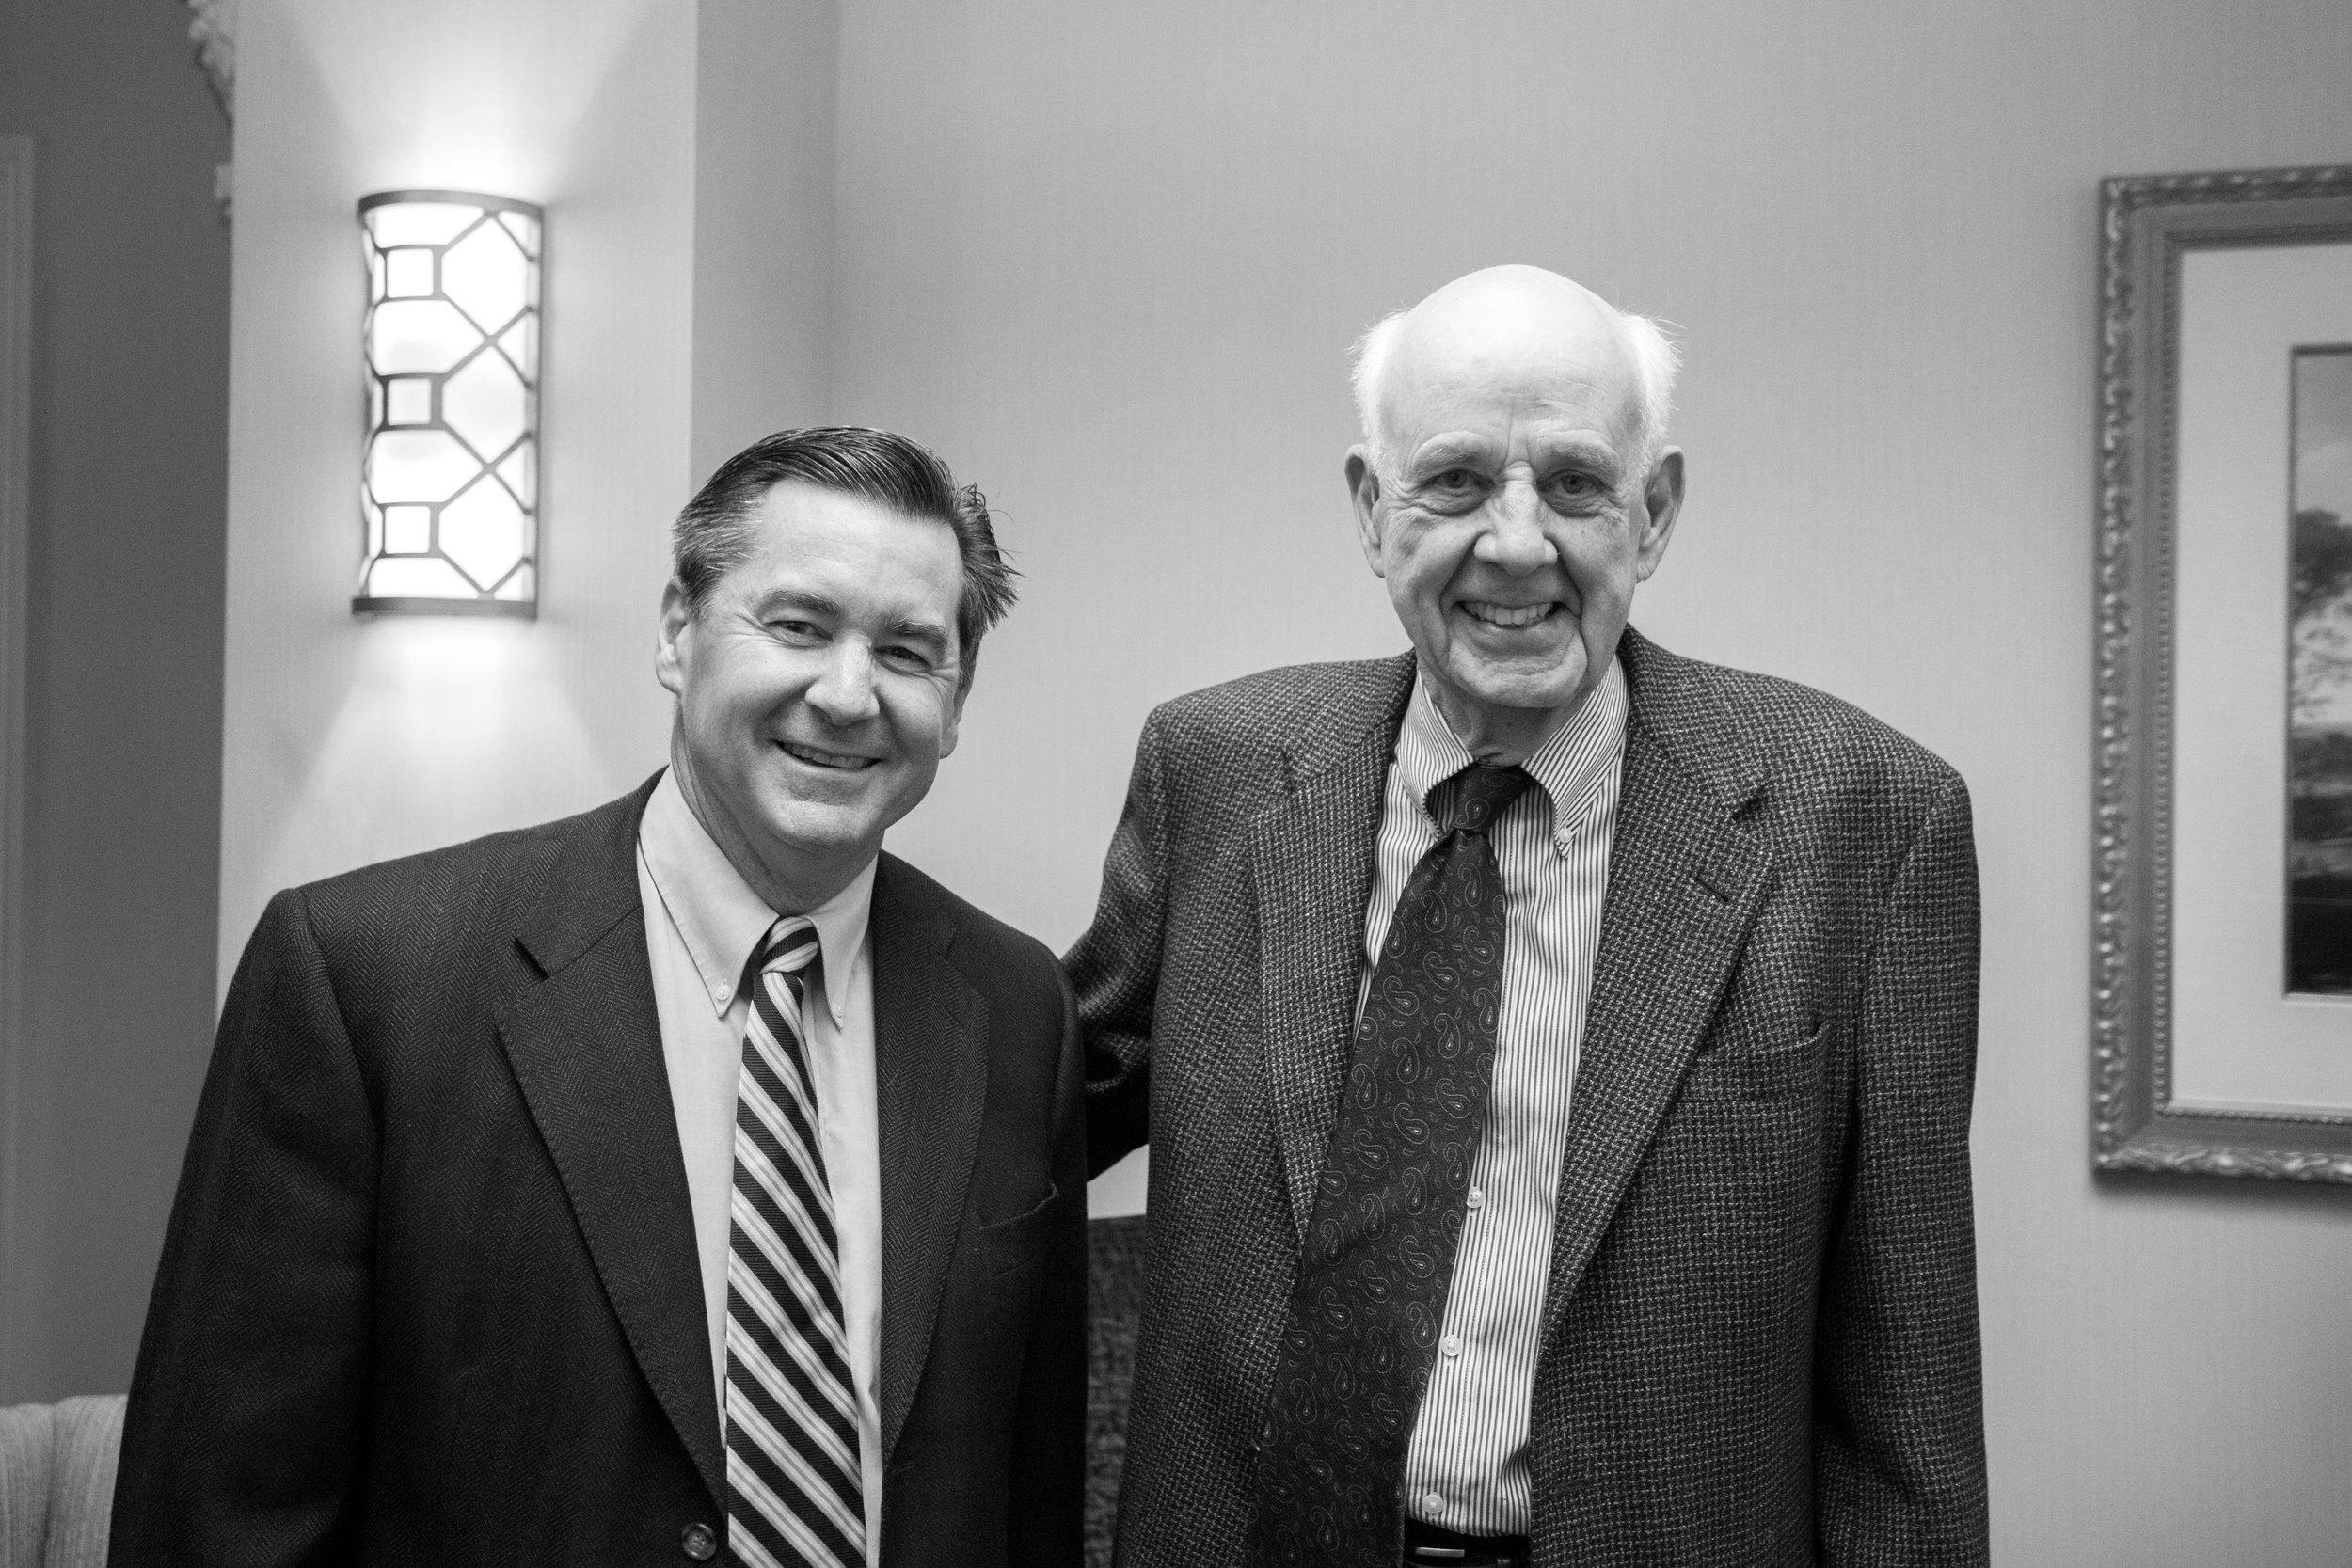 Martin Cothran and Wendell Berry at the 2017 CiRCE Institute Regional Conference in Louisville, KY